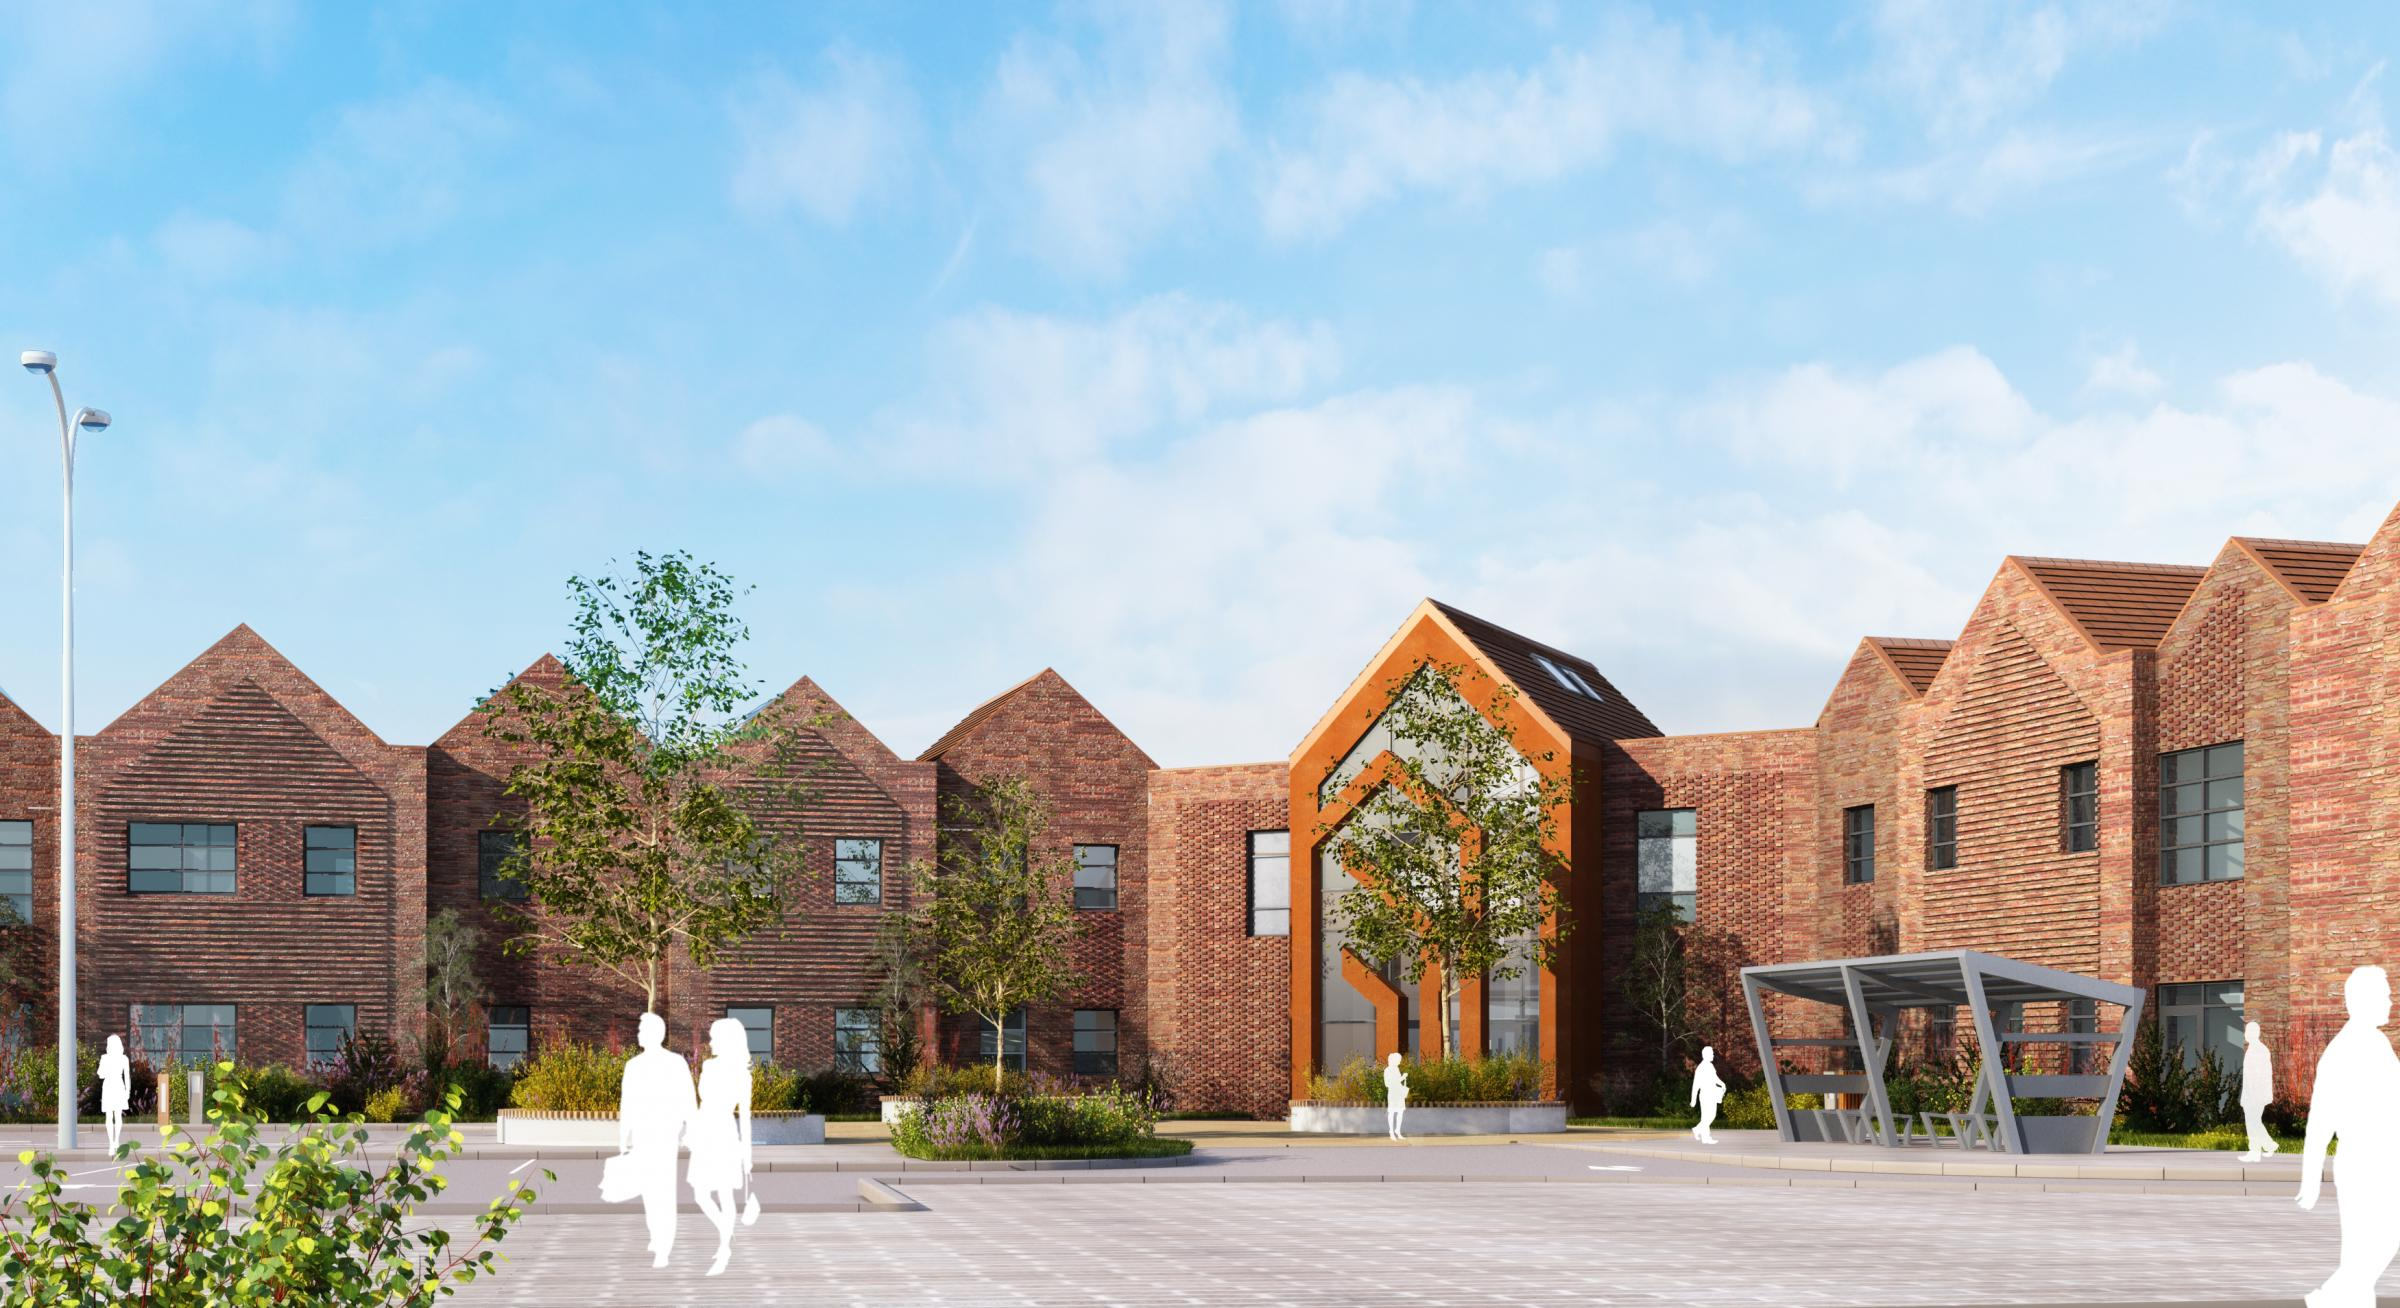 Foss Park Hospital, an artist's impression of the new mental health hospital in Haxby Road,York.